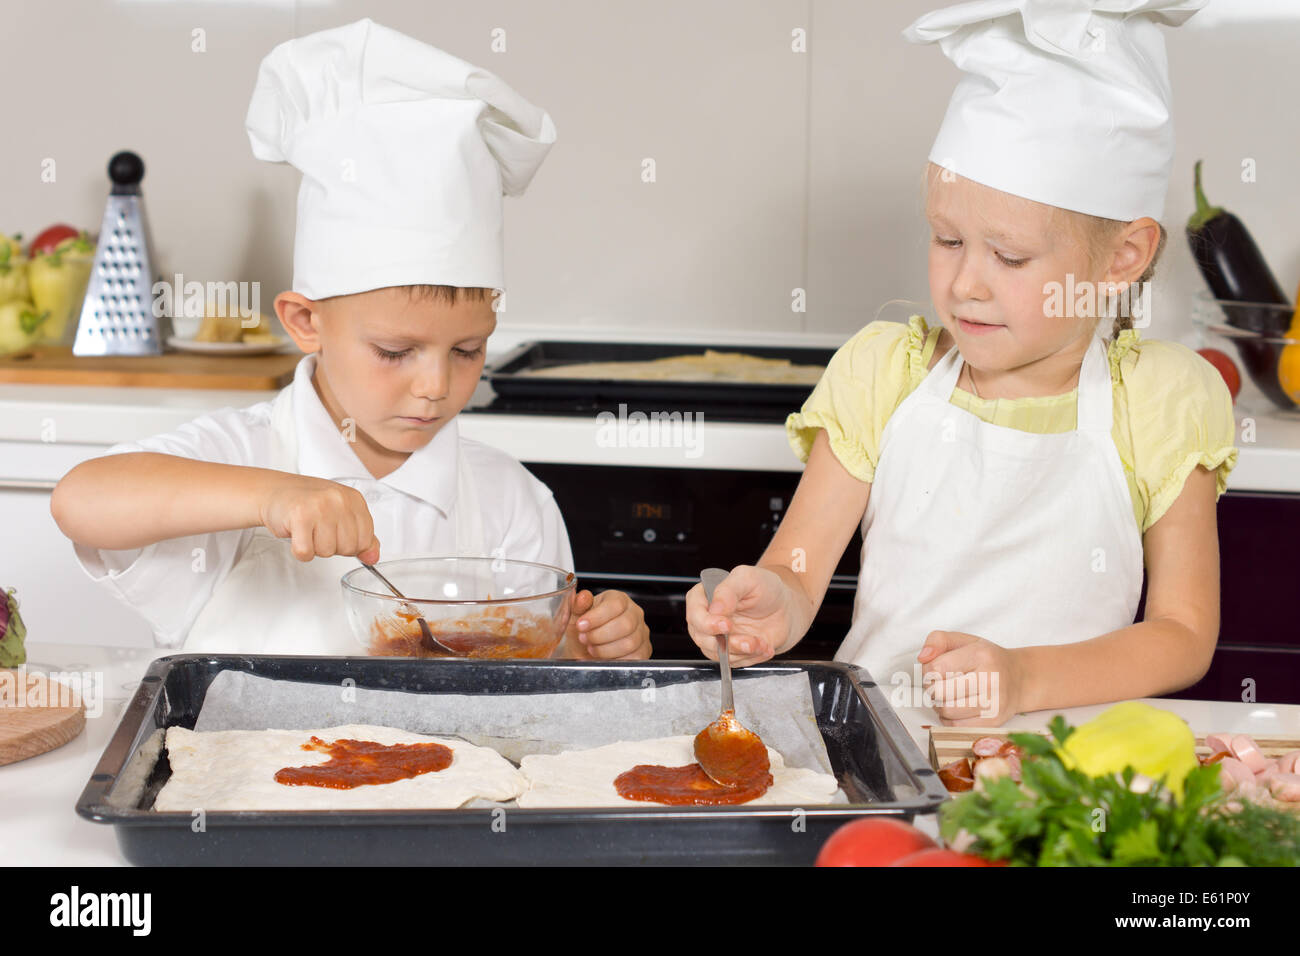 Two young children wearing chefs uniforms making themselves a homemade pizza spreading the tomato paste onto the - Stock Image